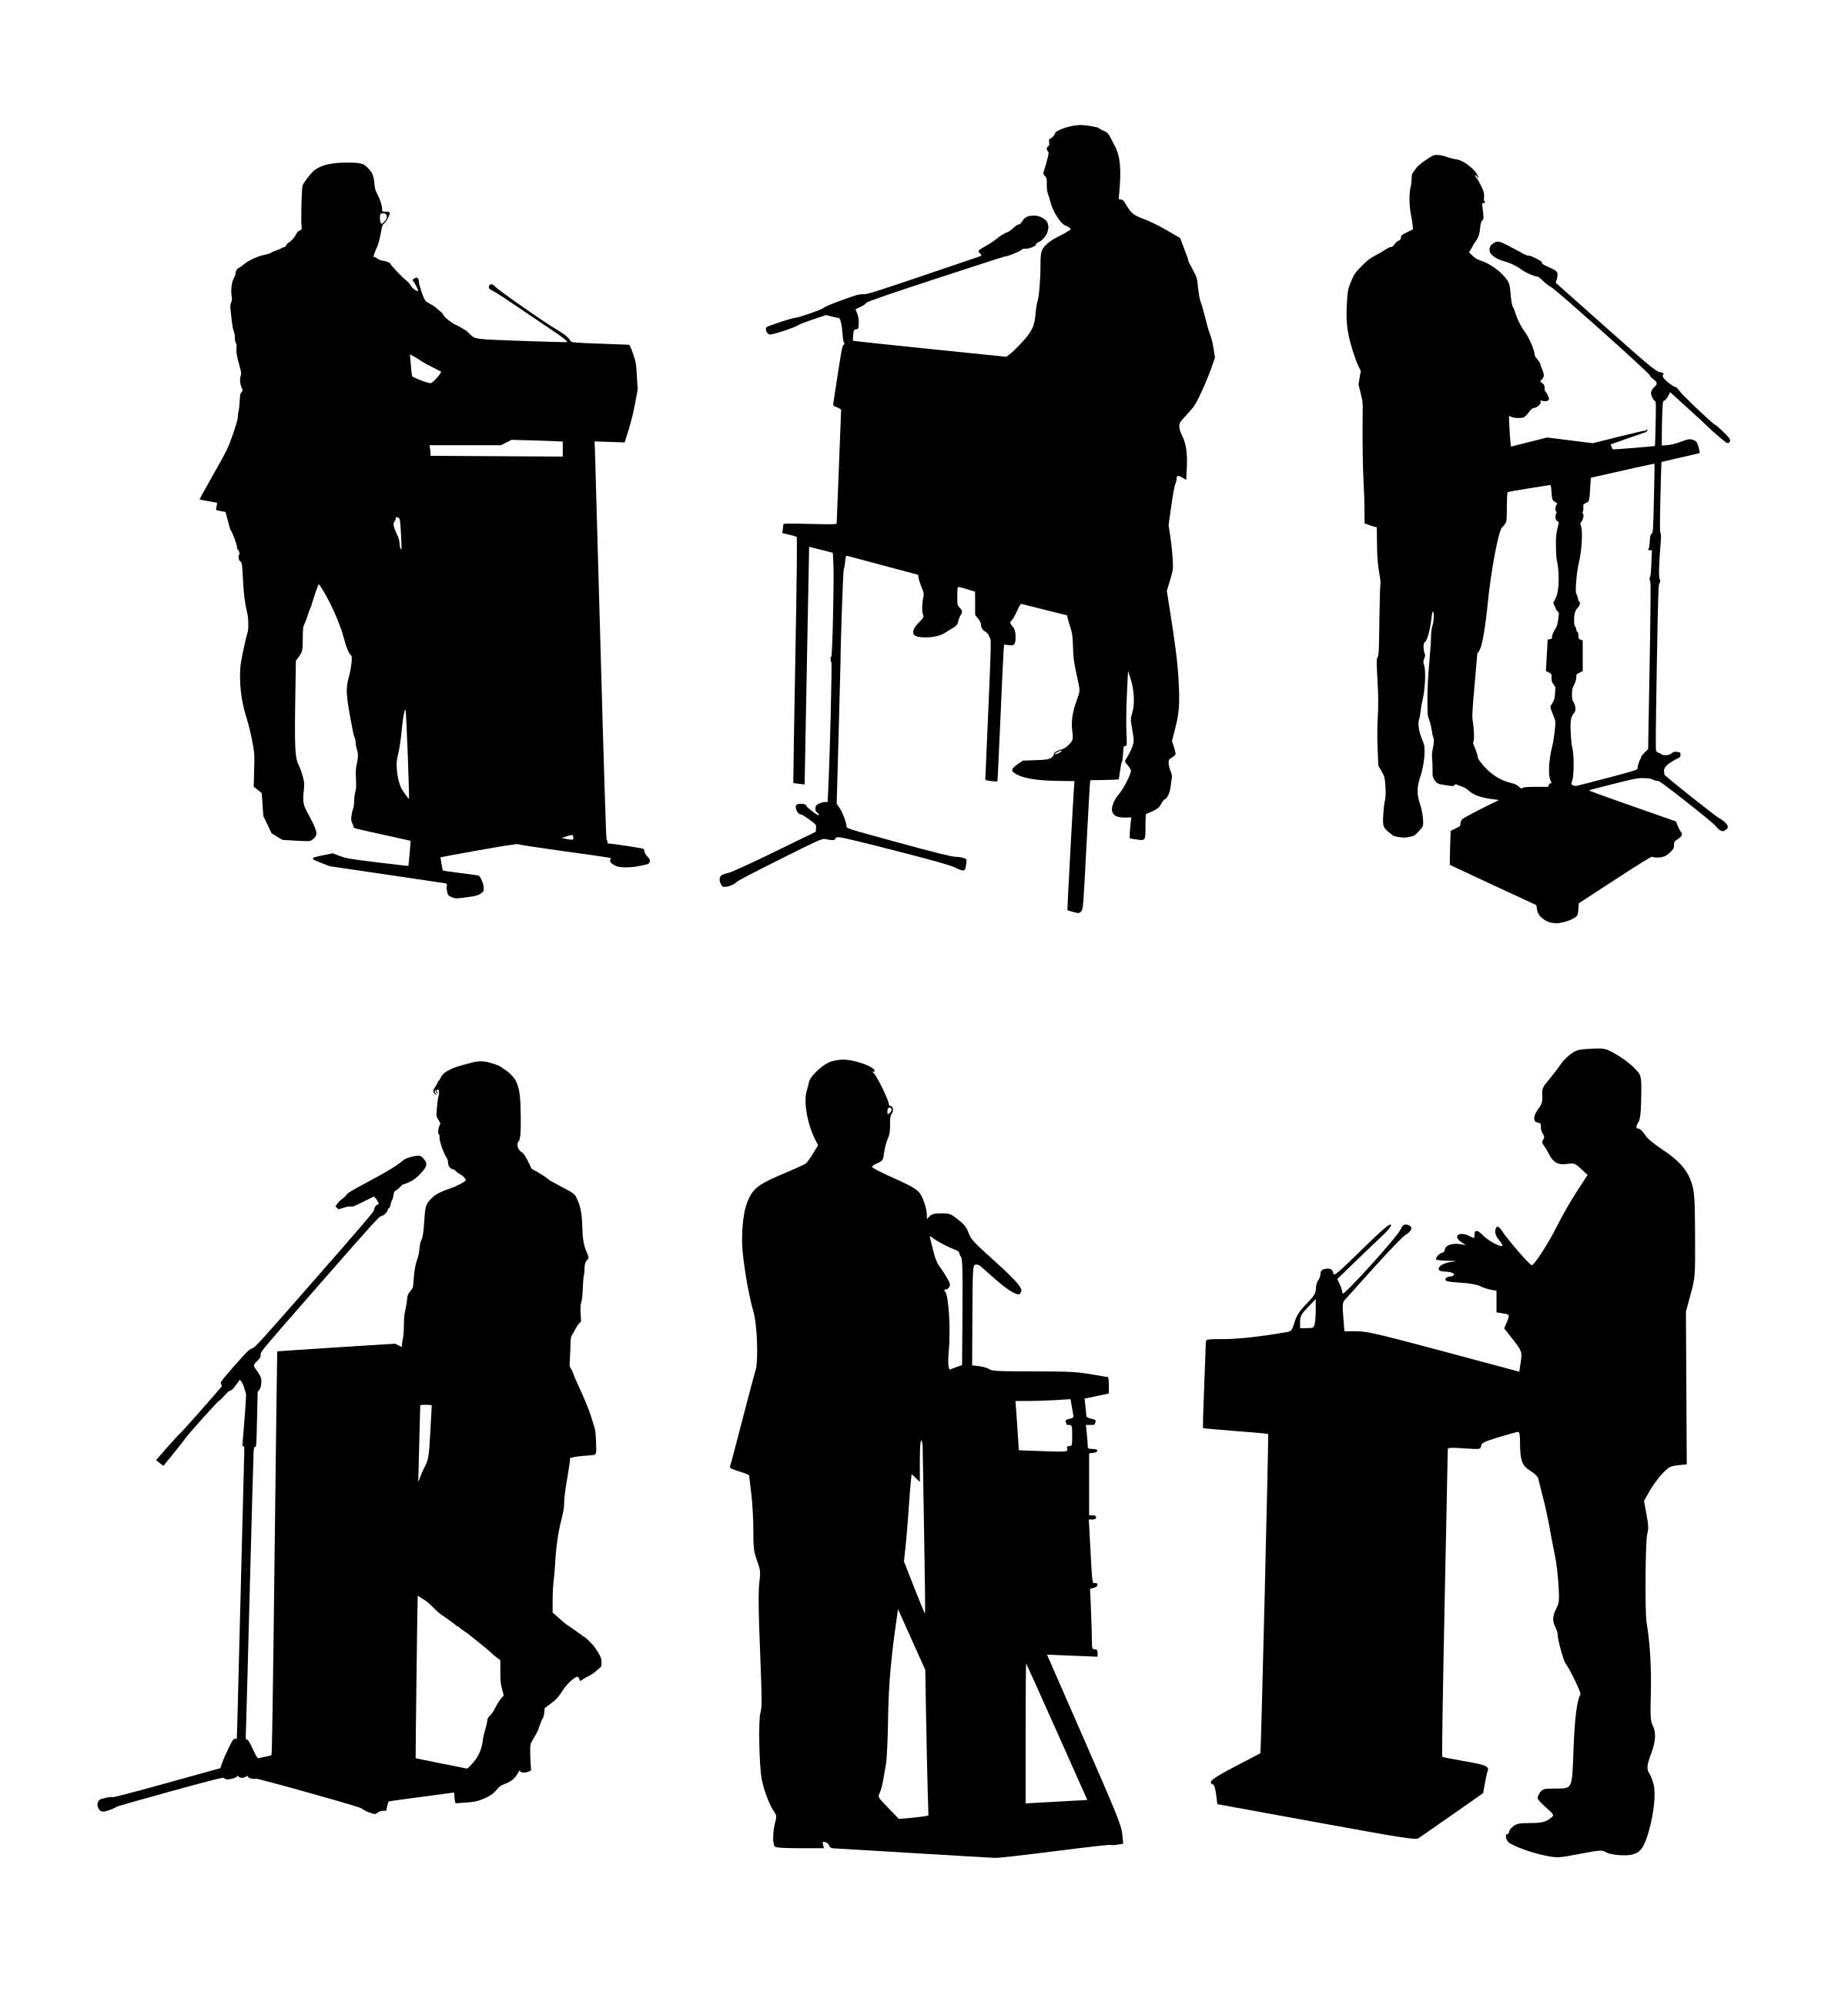 6-politican-on-podium-silhouette-cover.jpg